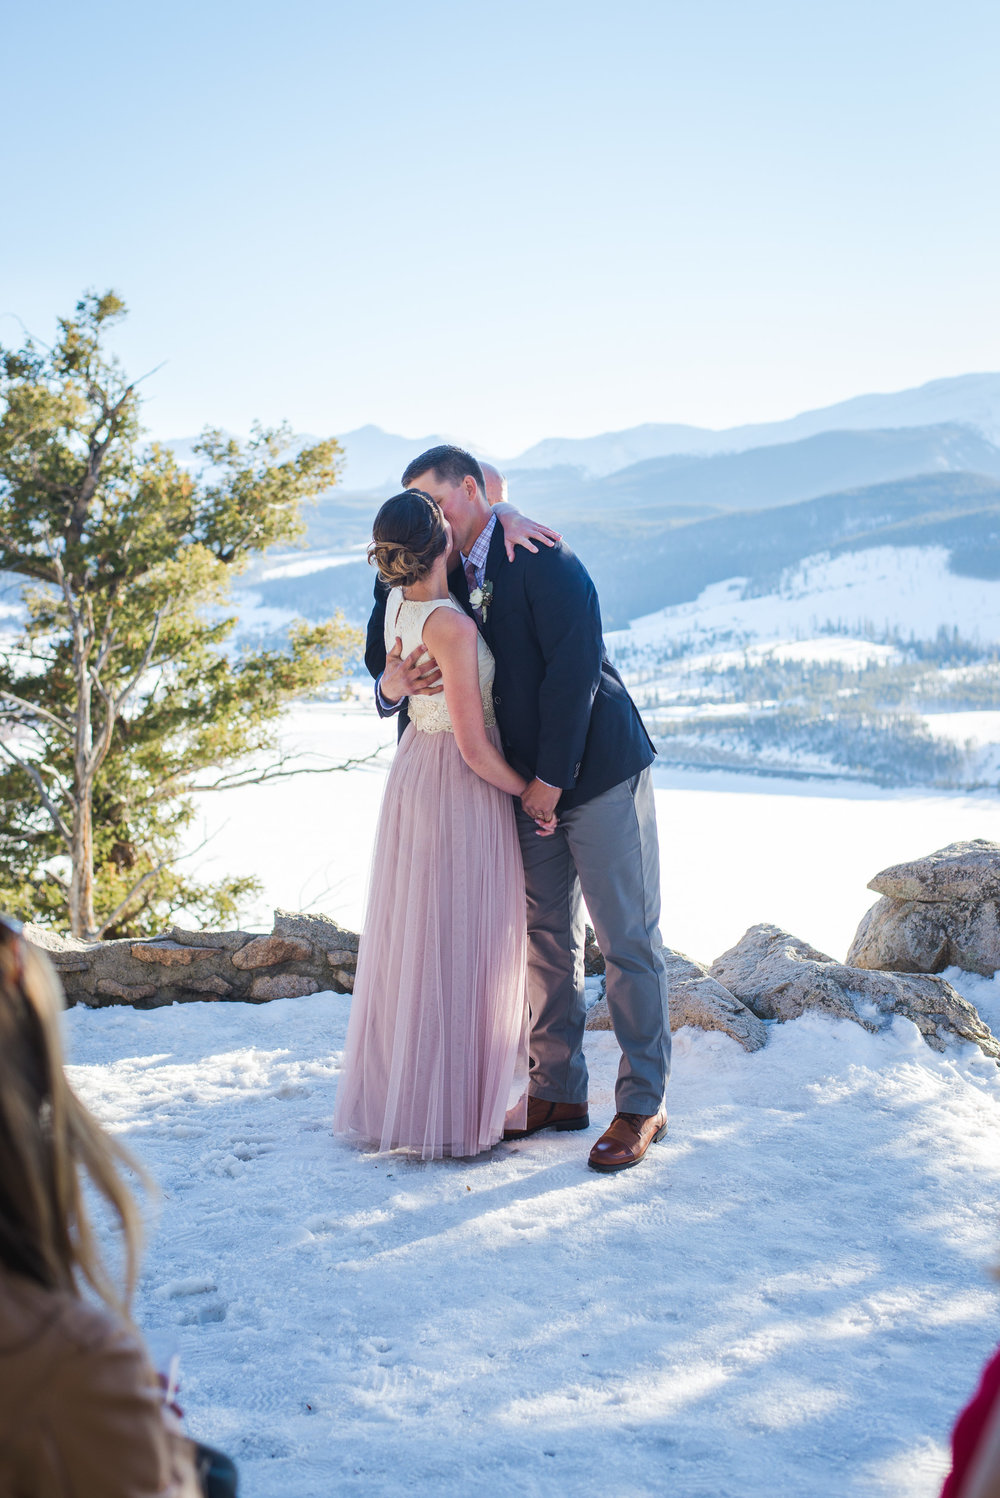 Destination Colorado winter wedding | Intimate mountain outdoor wedding | Keeping Composure Photography